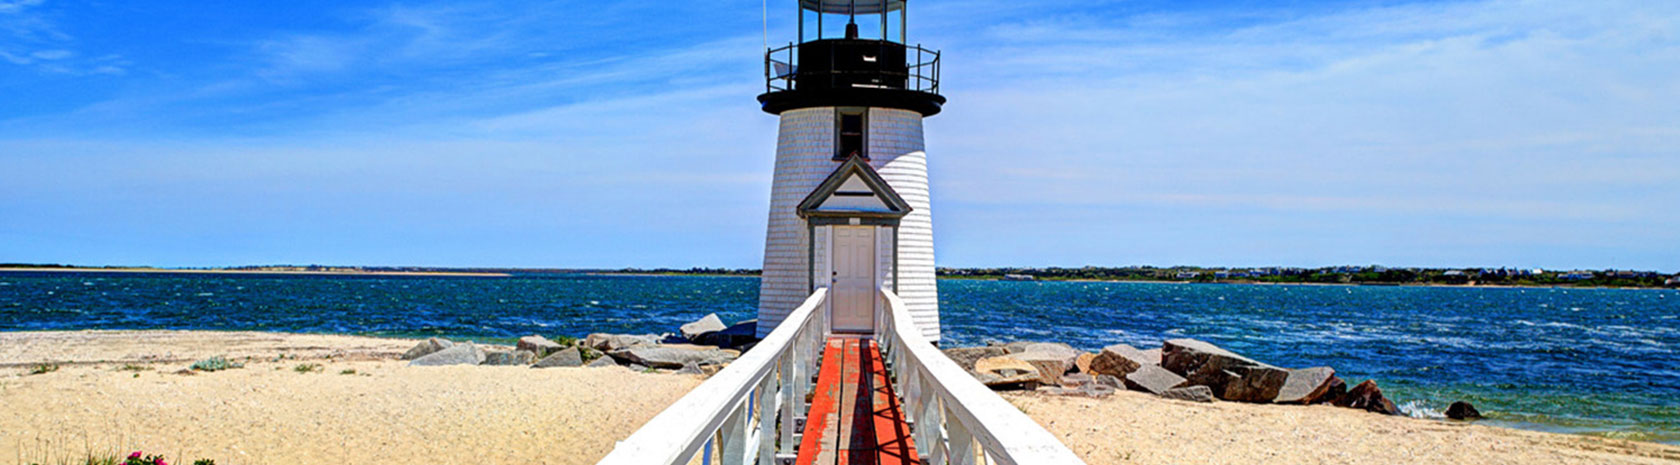 A shorter, white lighthouse sitting on a sandy beach with a wooden, red-floored walkway with white handrails leading up to it.